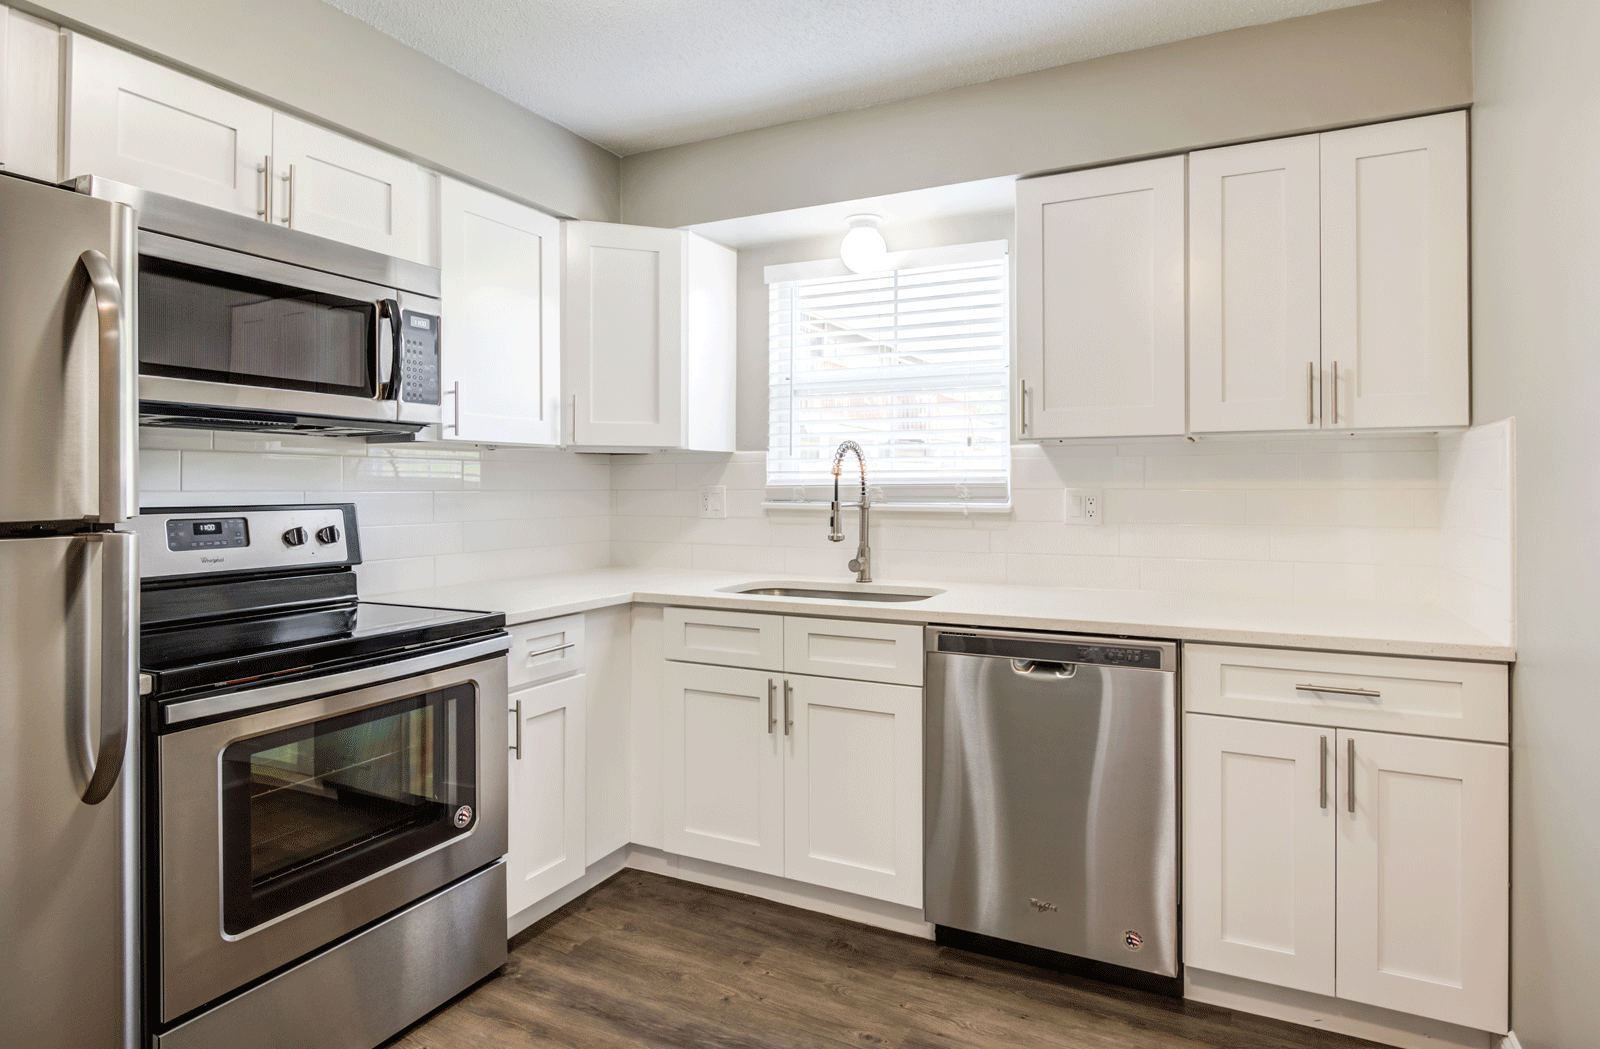 Updated kitchen with stainless steel appliances, white kitchen cabinets